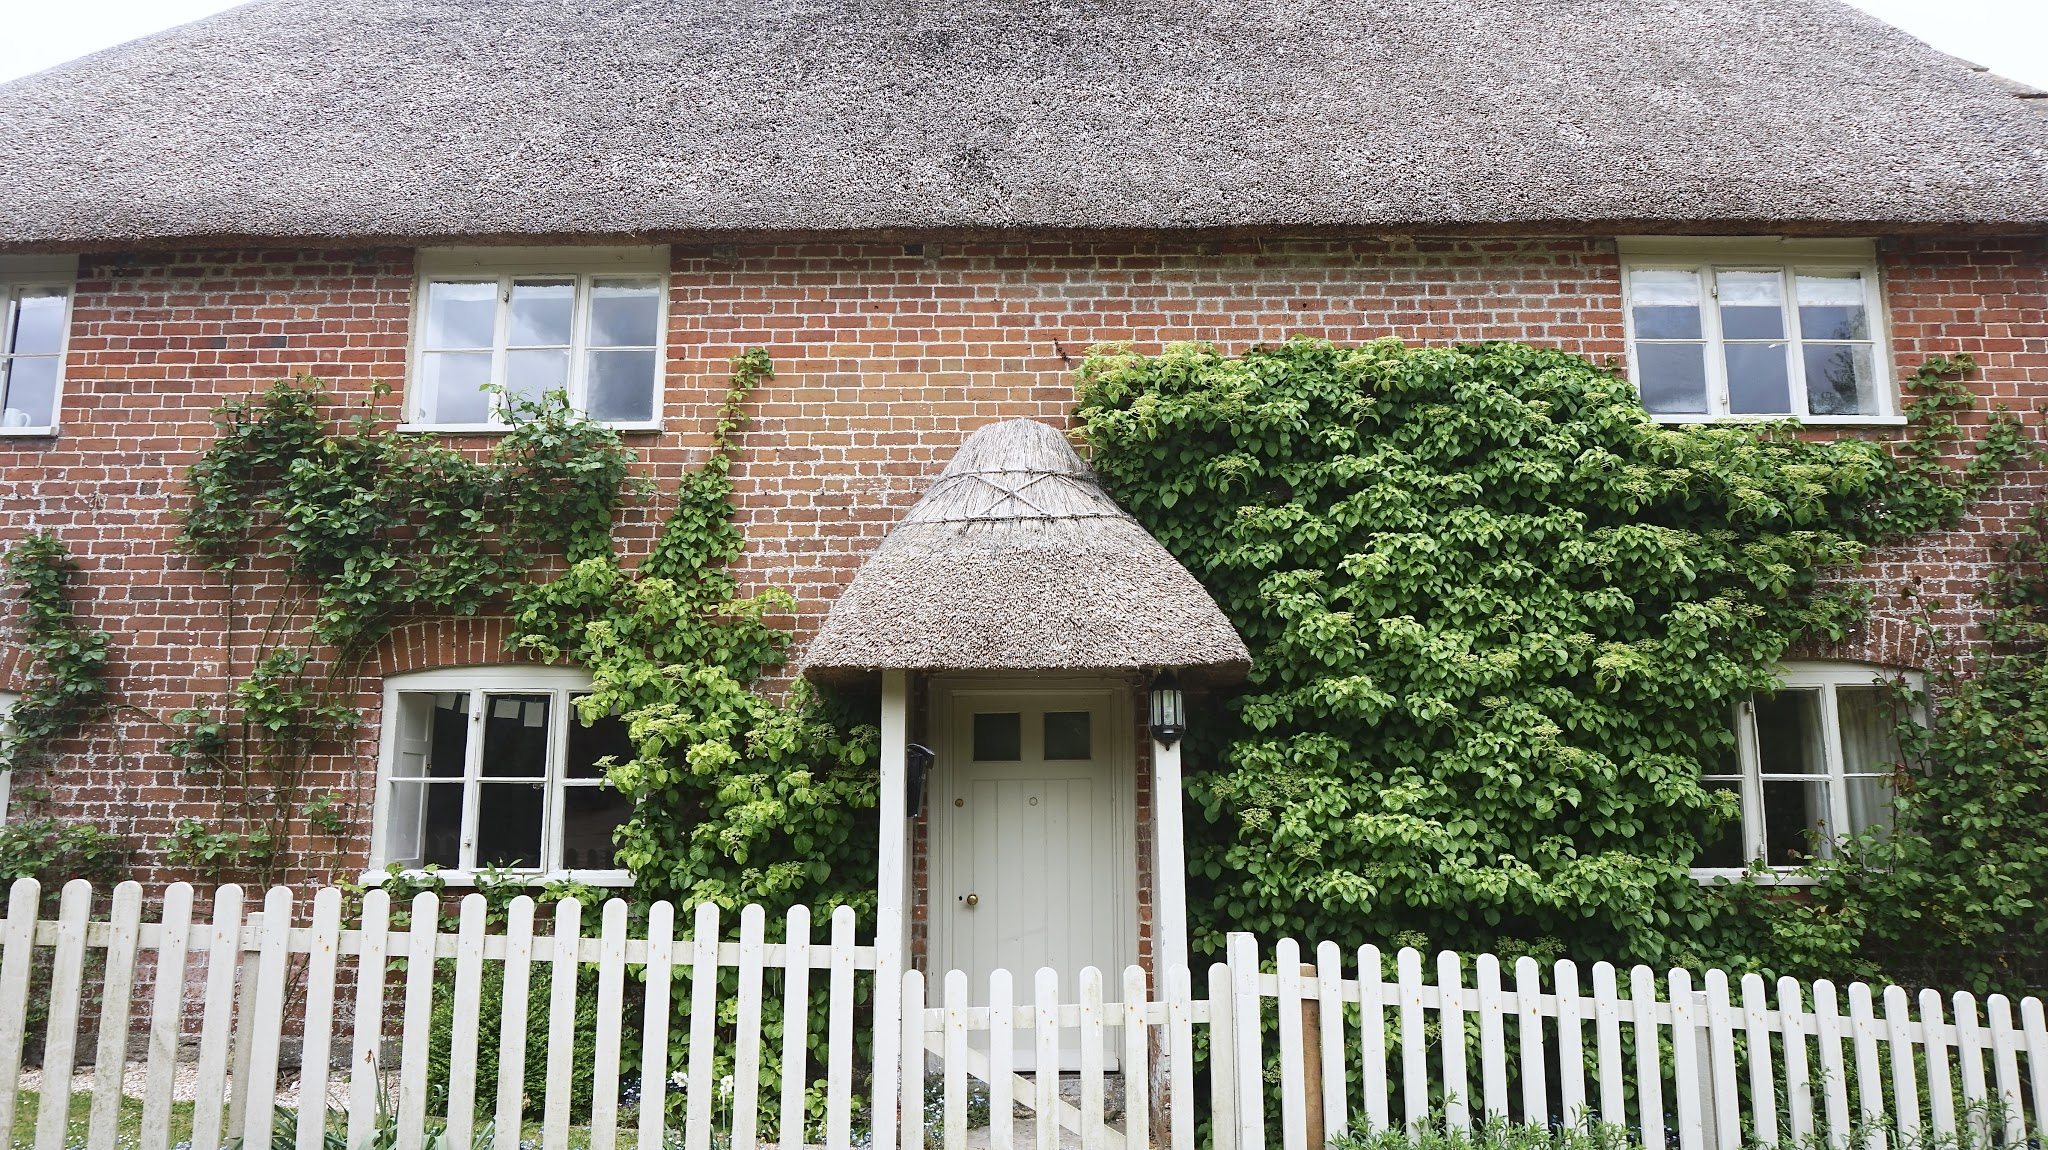 Two-storey brick cottage with a thatch roof, green wooden door and green picket fence